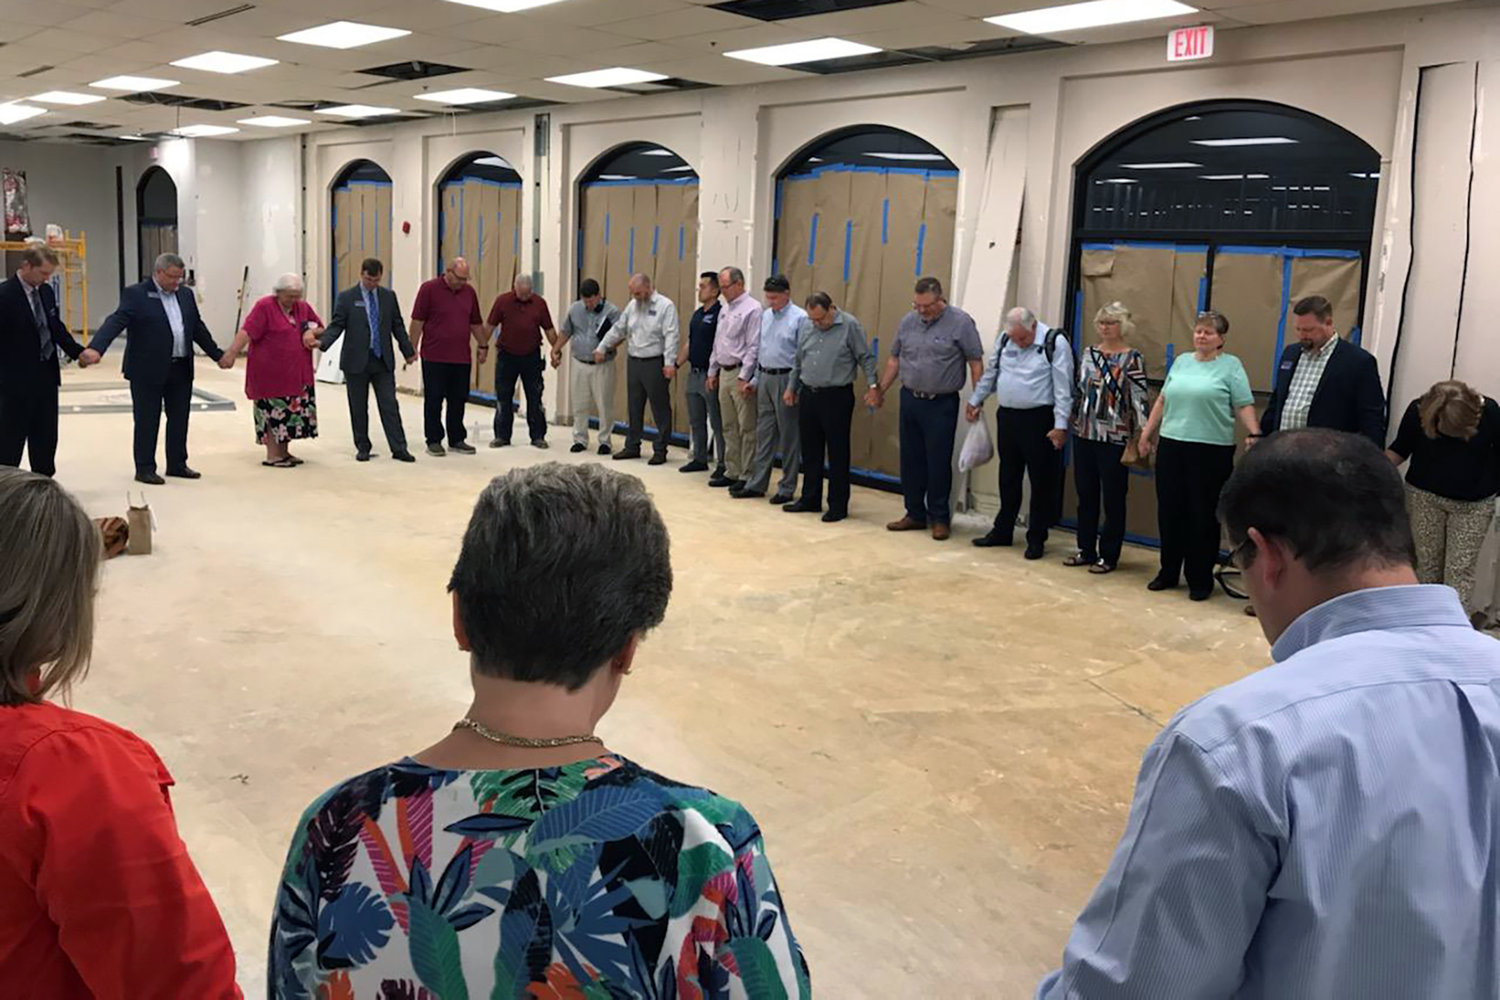 Members of the New Orleans Baptist Theological Seminary and Leavell College board of trustees pray in the space that will house the new Leavell College offices. Renovations to the former location of the LifeWay campus store are well underway. NOBTS leaders expect the Leavell College offices to move to the renovated space in January 2020. (NOBTS photo)